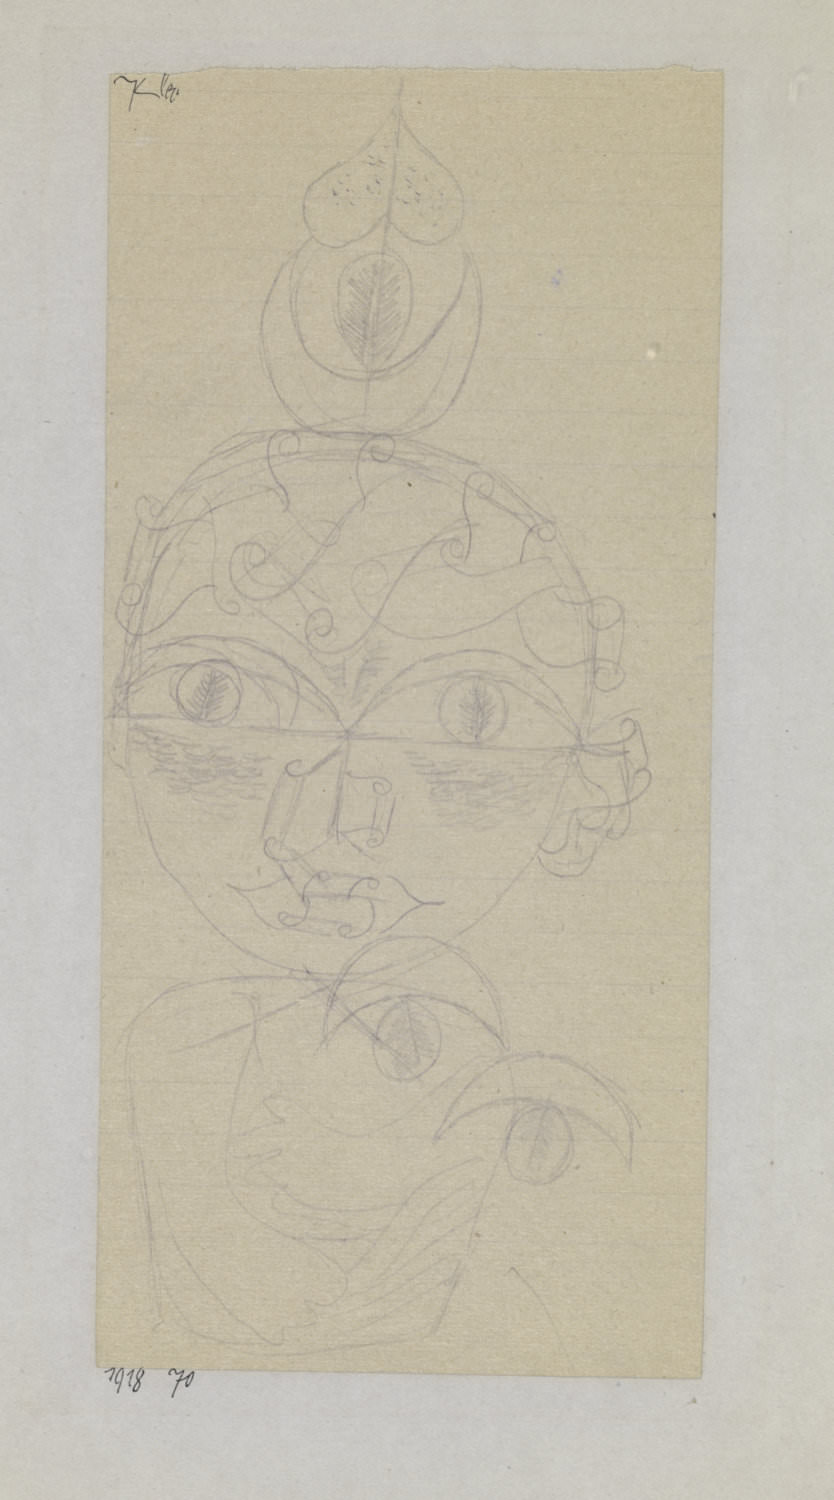 Paul Klee, Kind, 1918, 70, indelible pencil on paper on cardboard, 22,6 x 10,5 cm, Zentrum Paul Klee, Bern © Zentrum Paul Klee, Bern, Bildarchiv